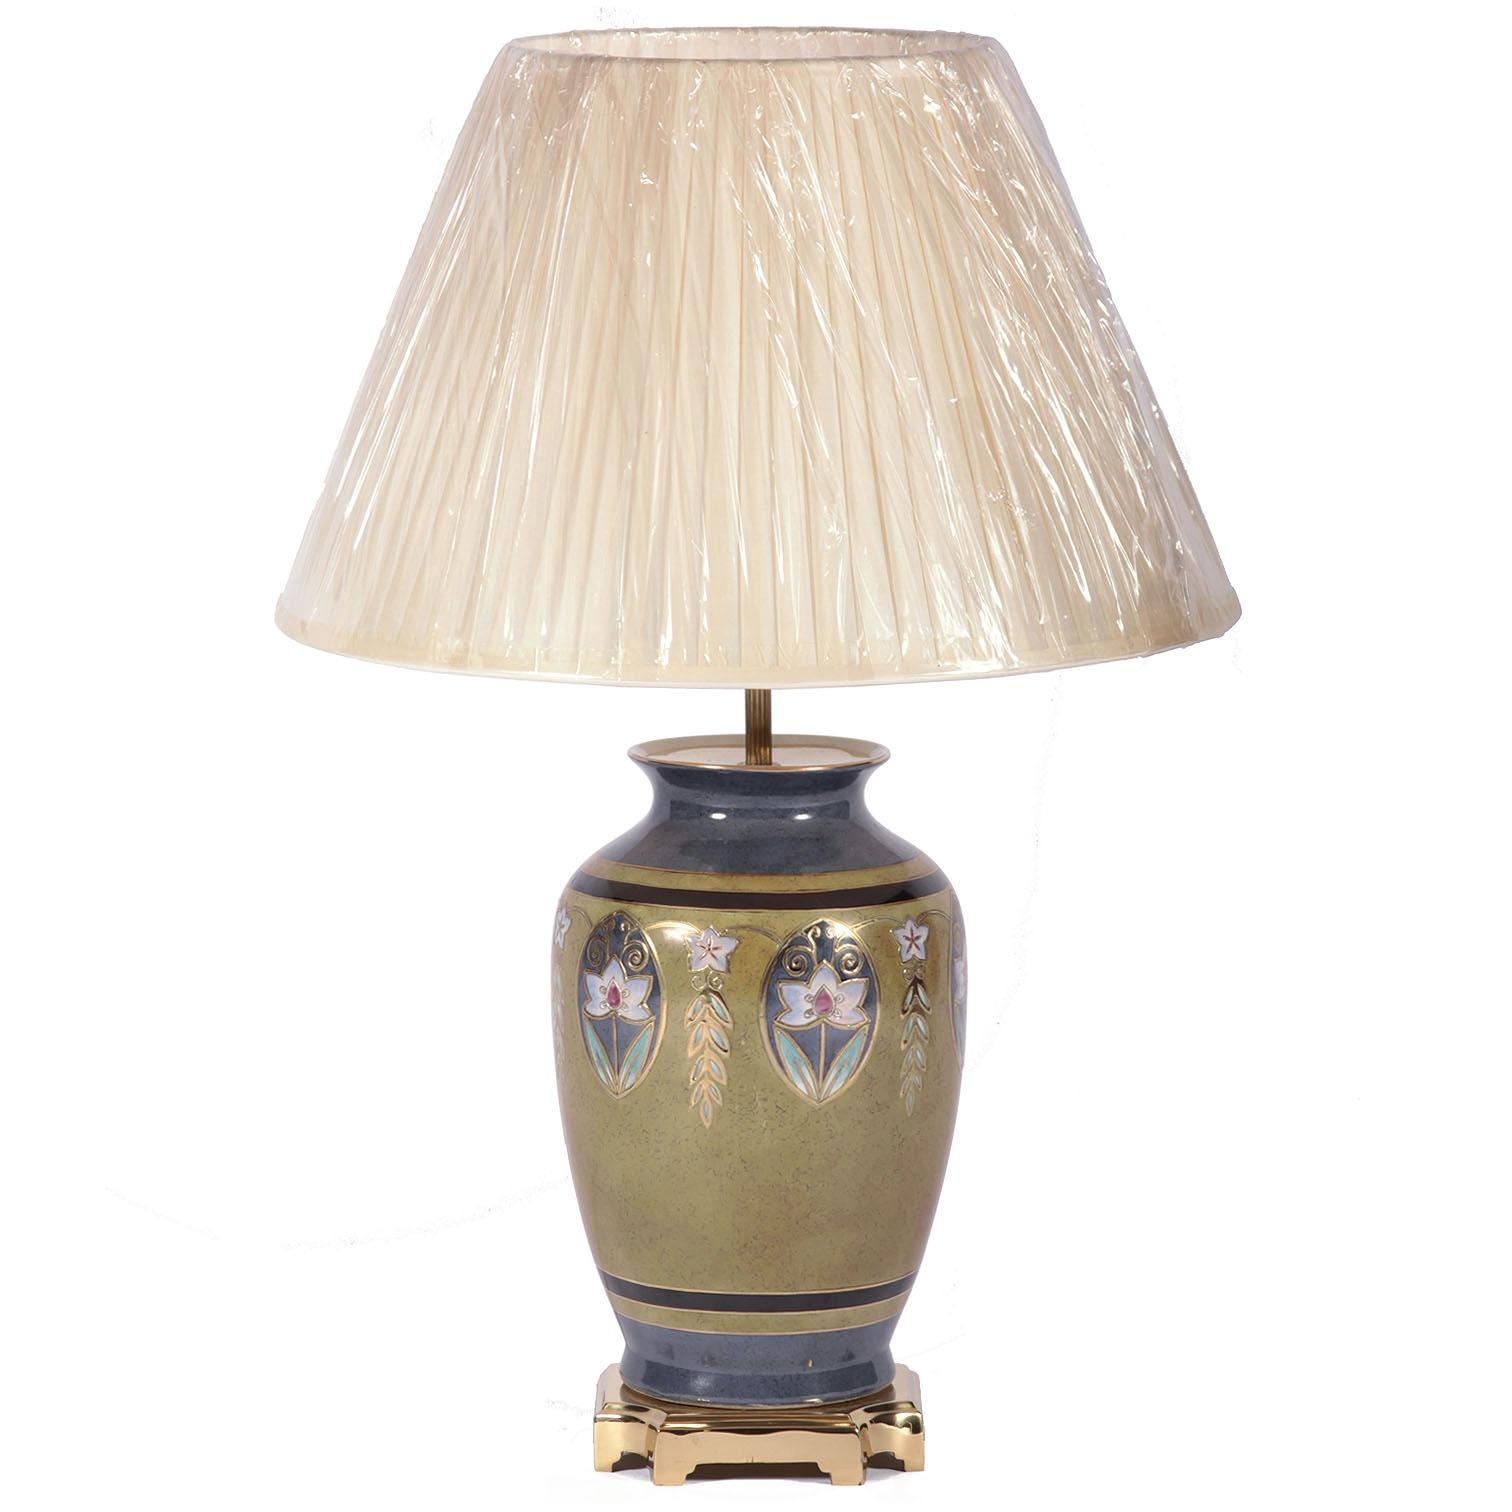 Art deco style table lamp with shade table lamps from for Art deco style lamp